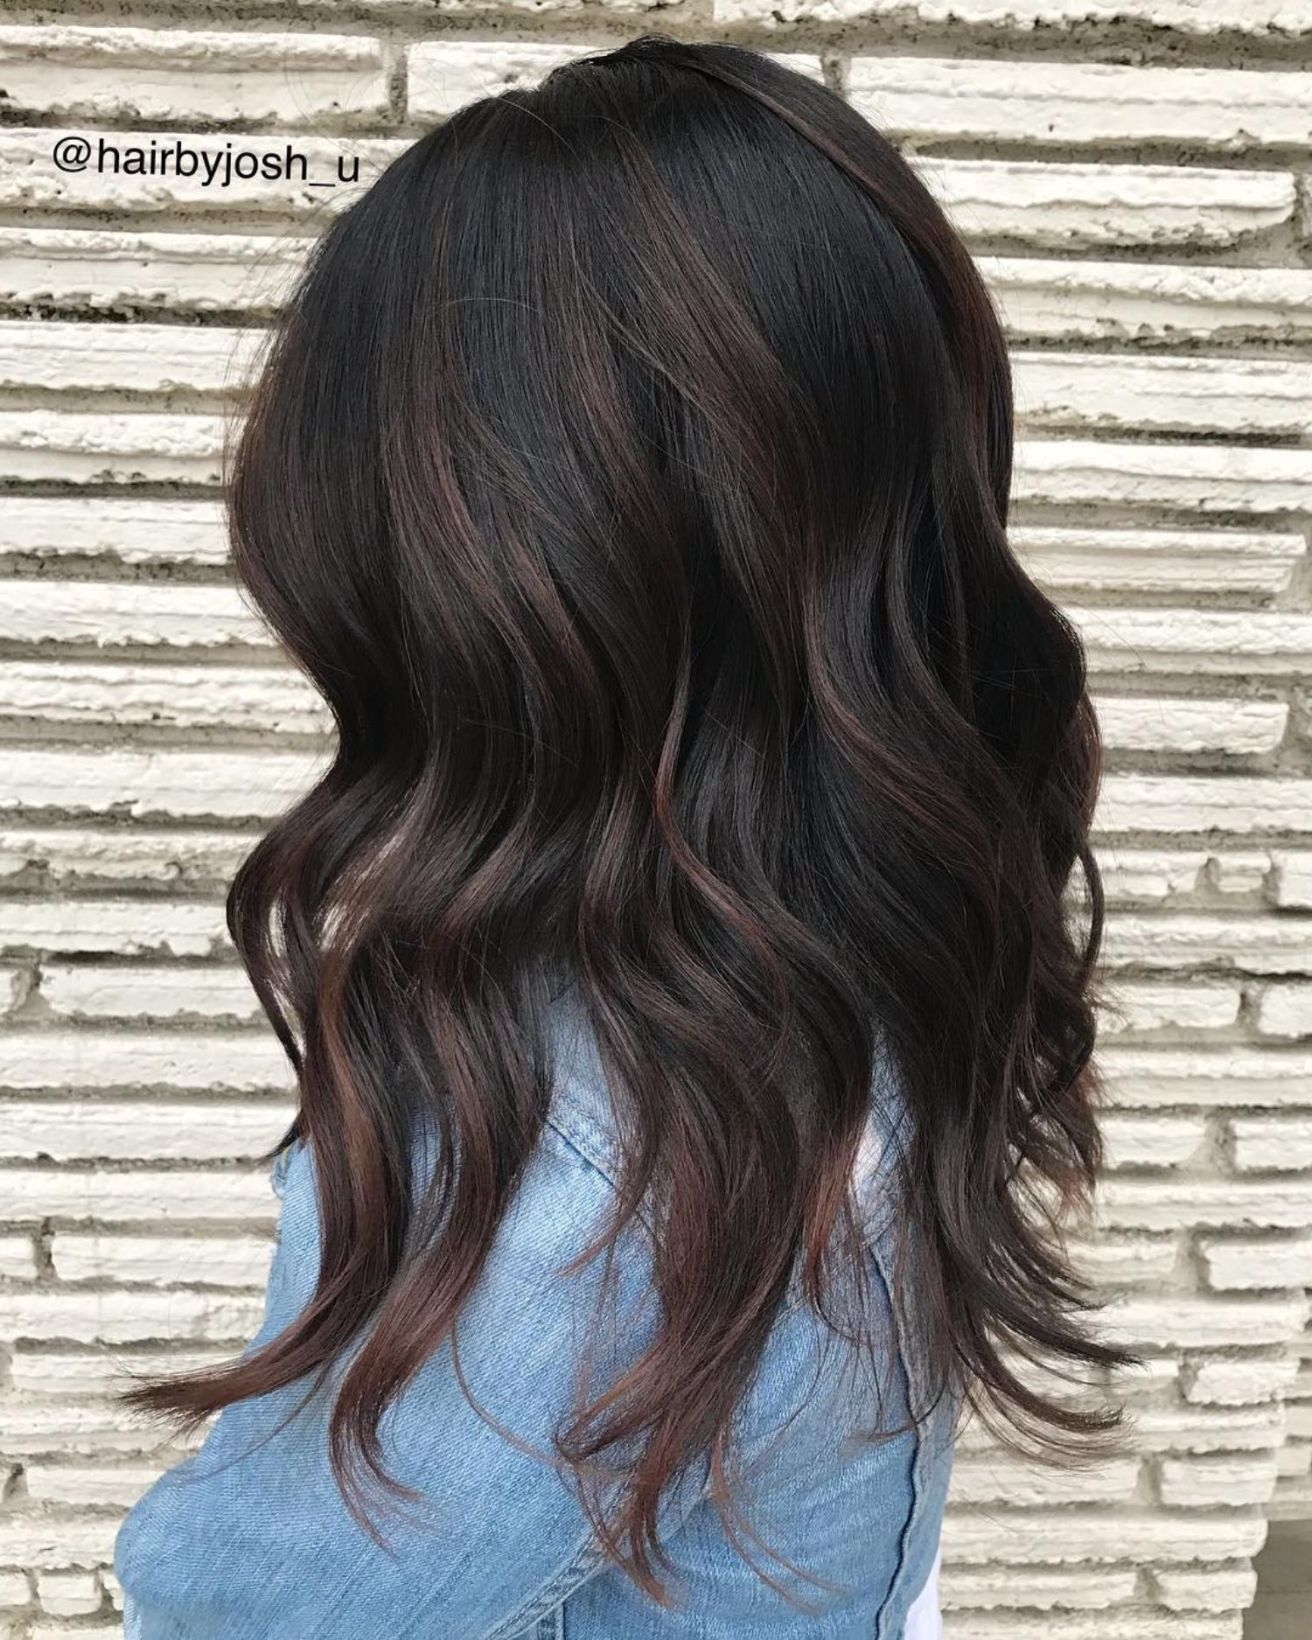 Black Hair With Subtle Brown Highlights Brunette Hair Color Black Hair With Highlights Brown Hair Colors